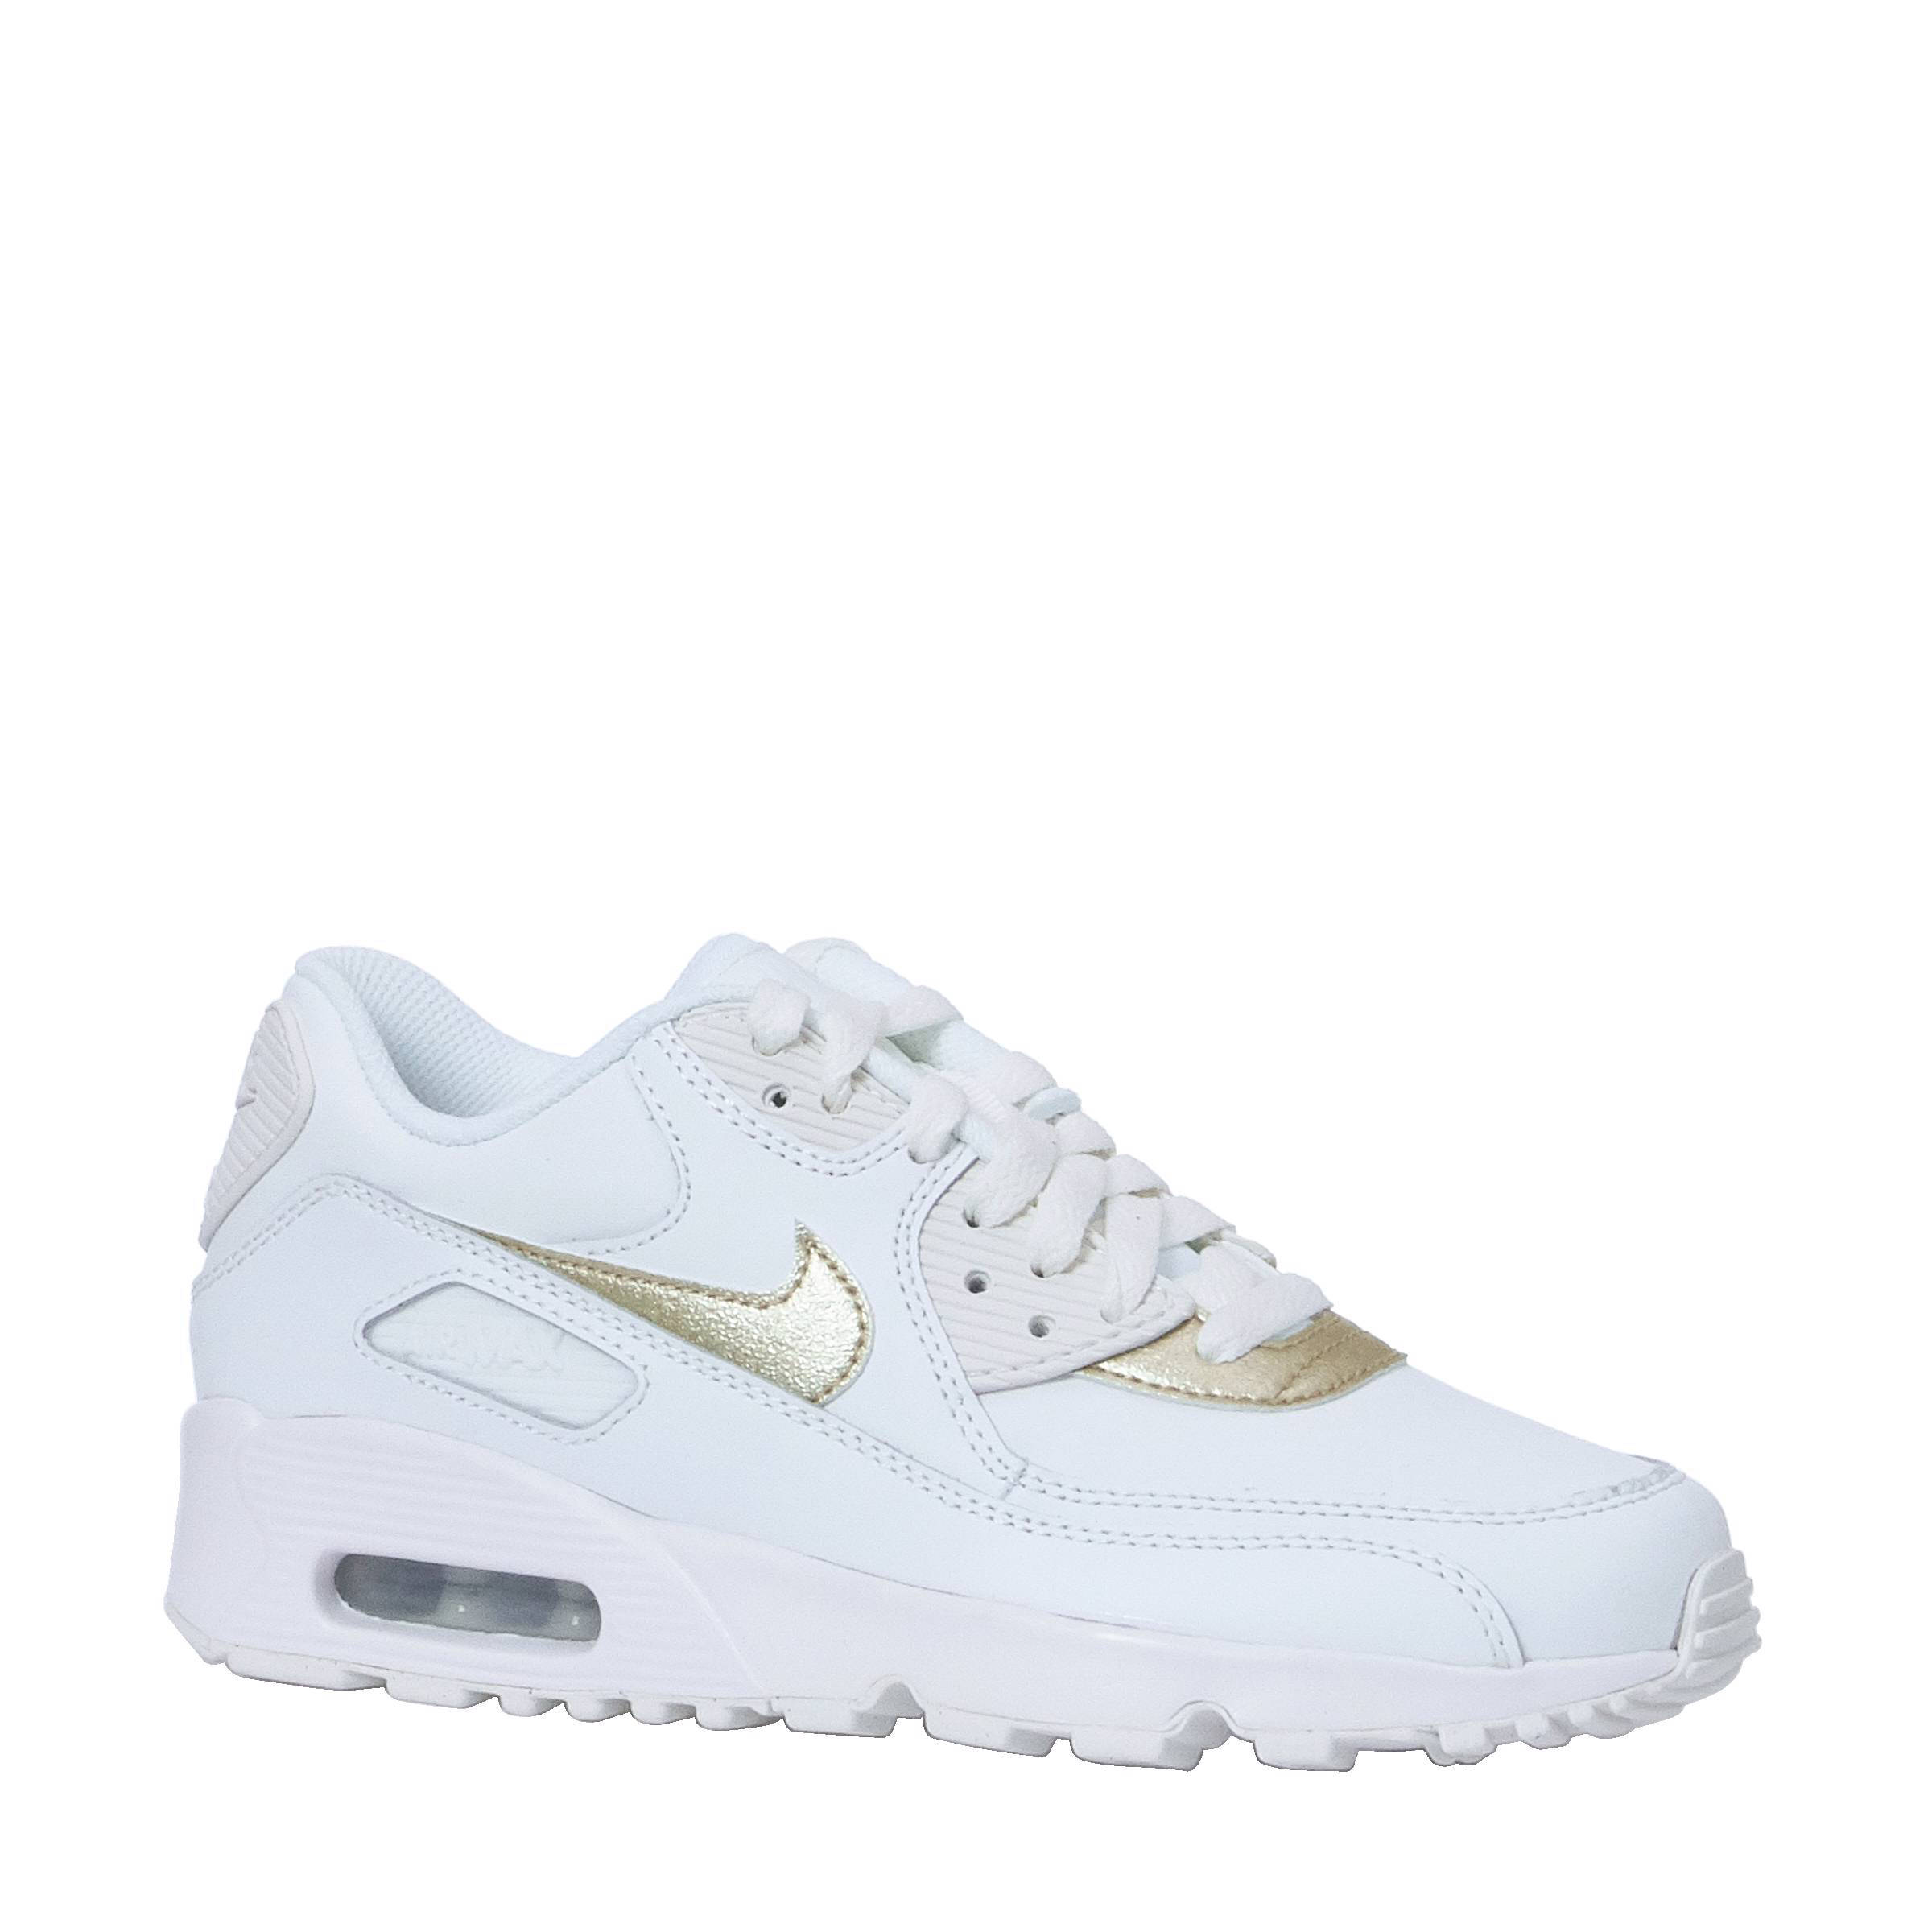 nike air max wit goud